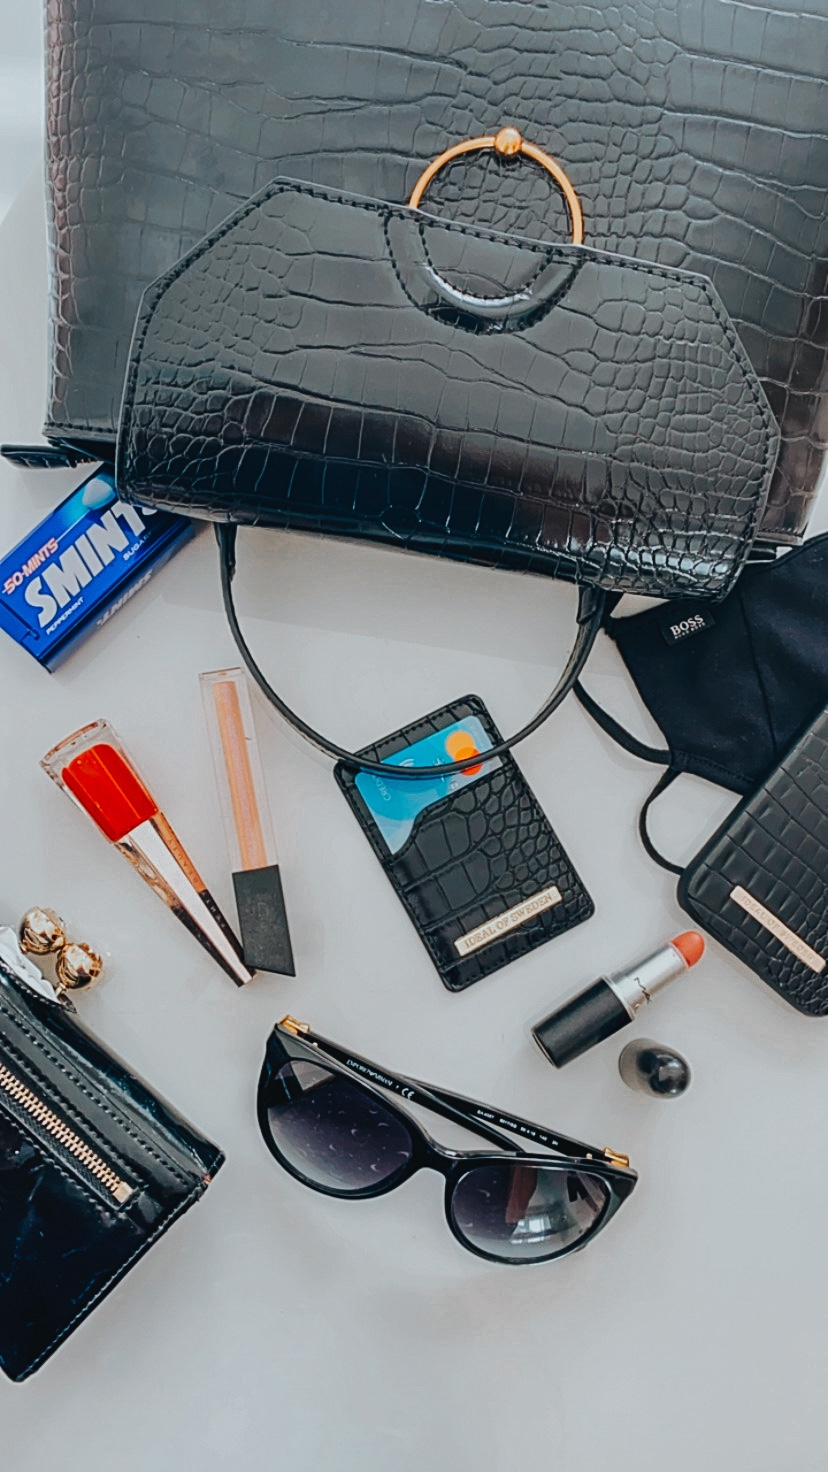 What's inside my Handbag?